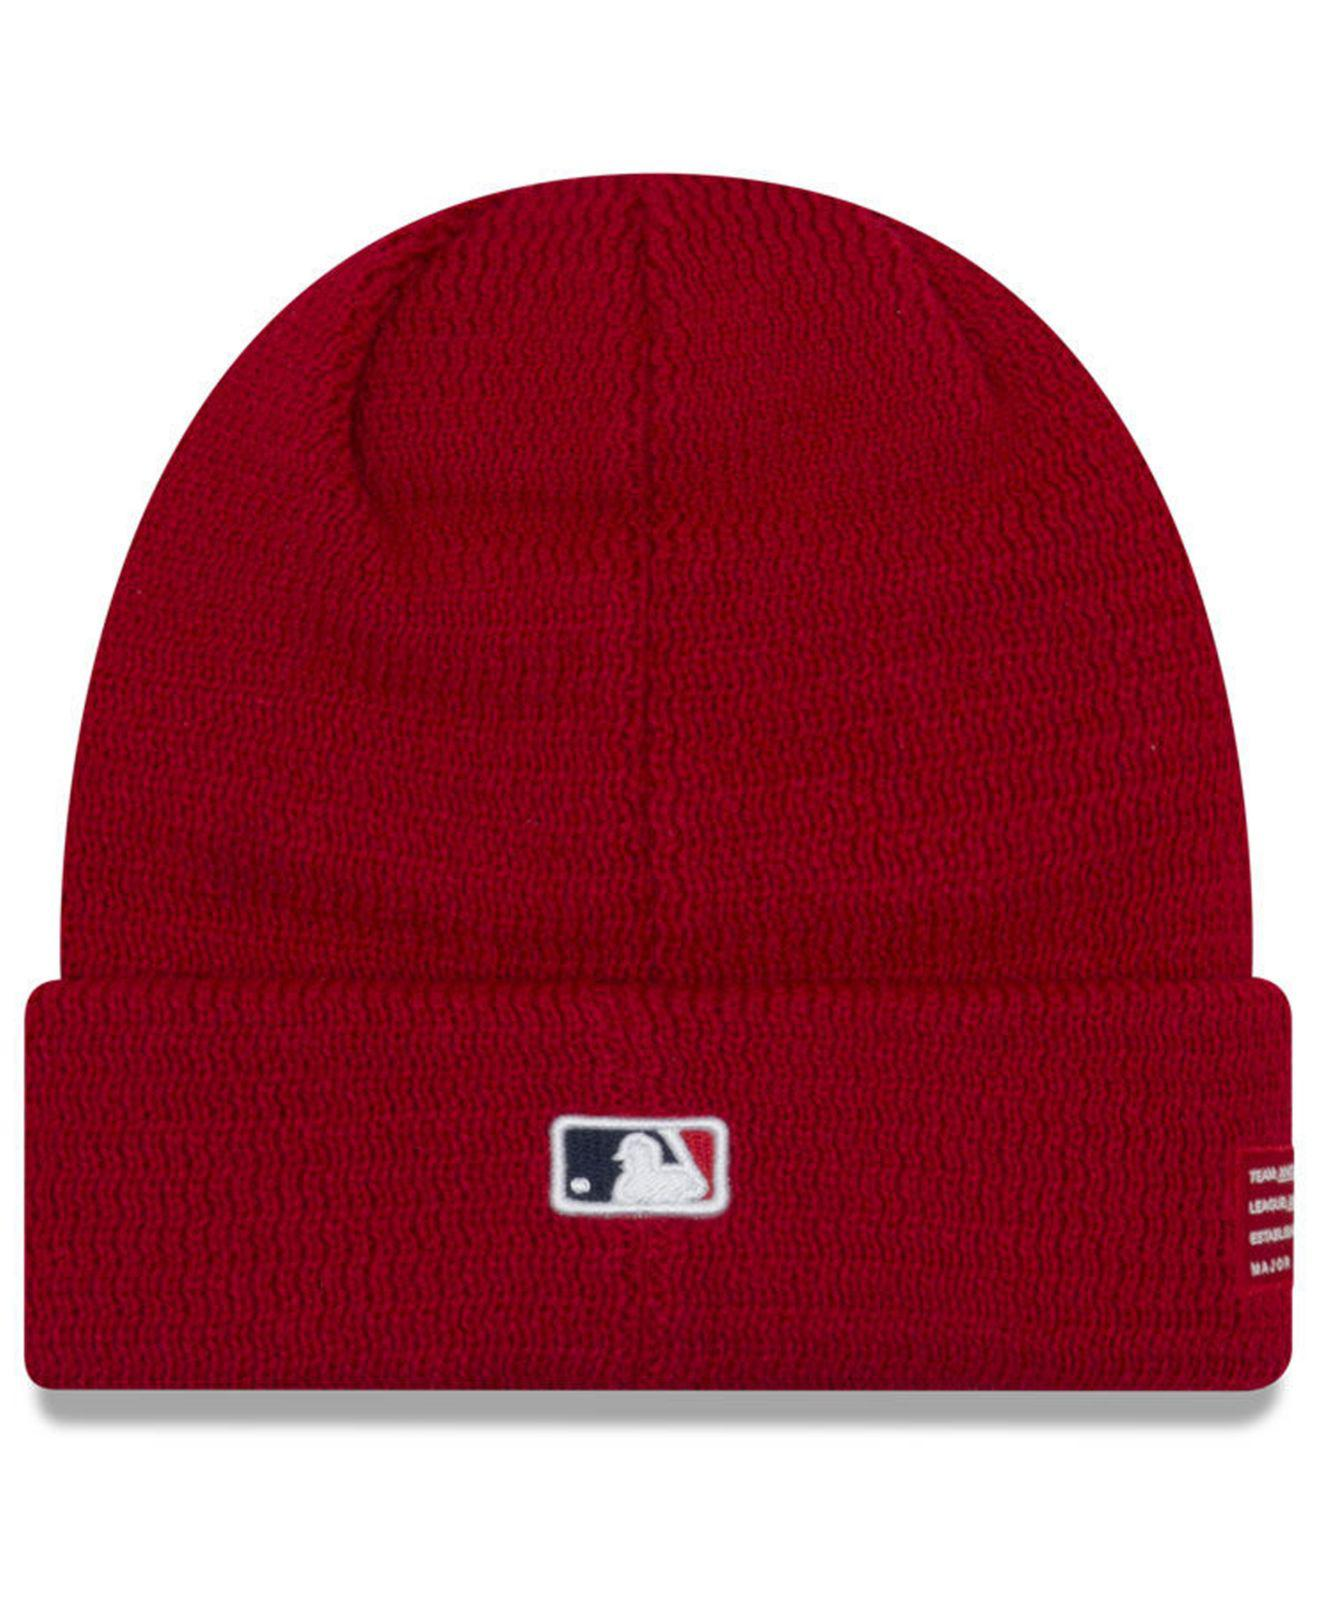 wholesale dealer 0e124 1250a ... italy lyst ktz los angeles angels sport knit hat in red for men 2394e  23077